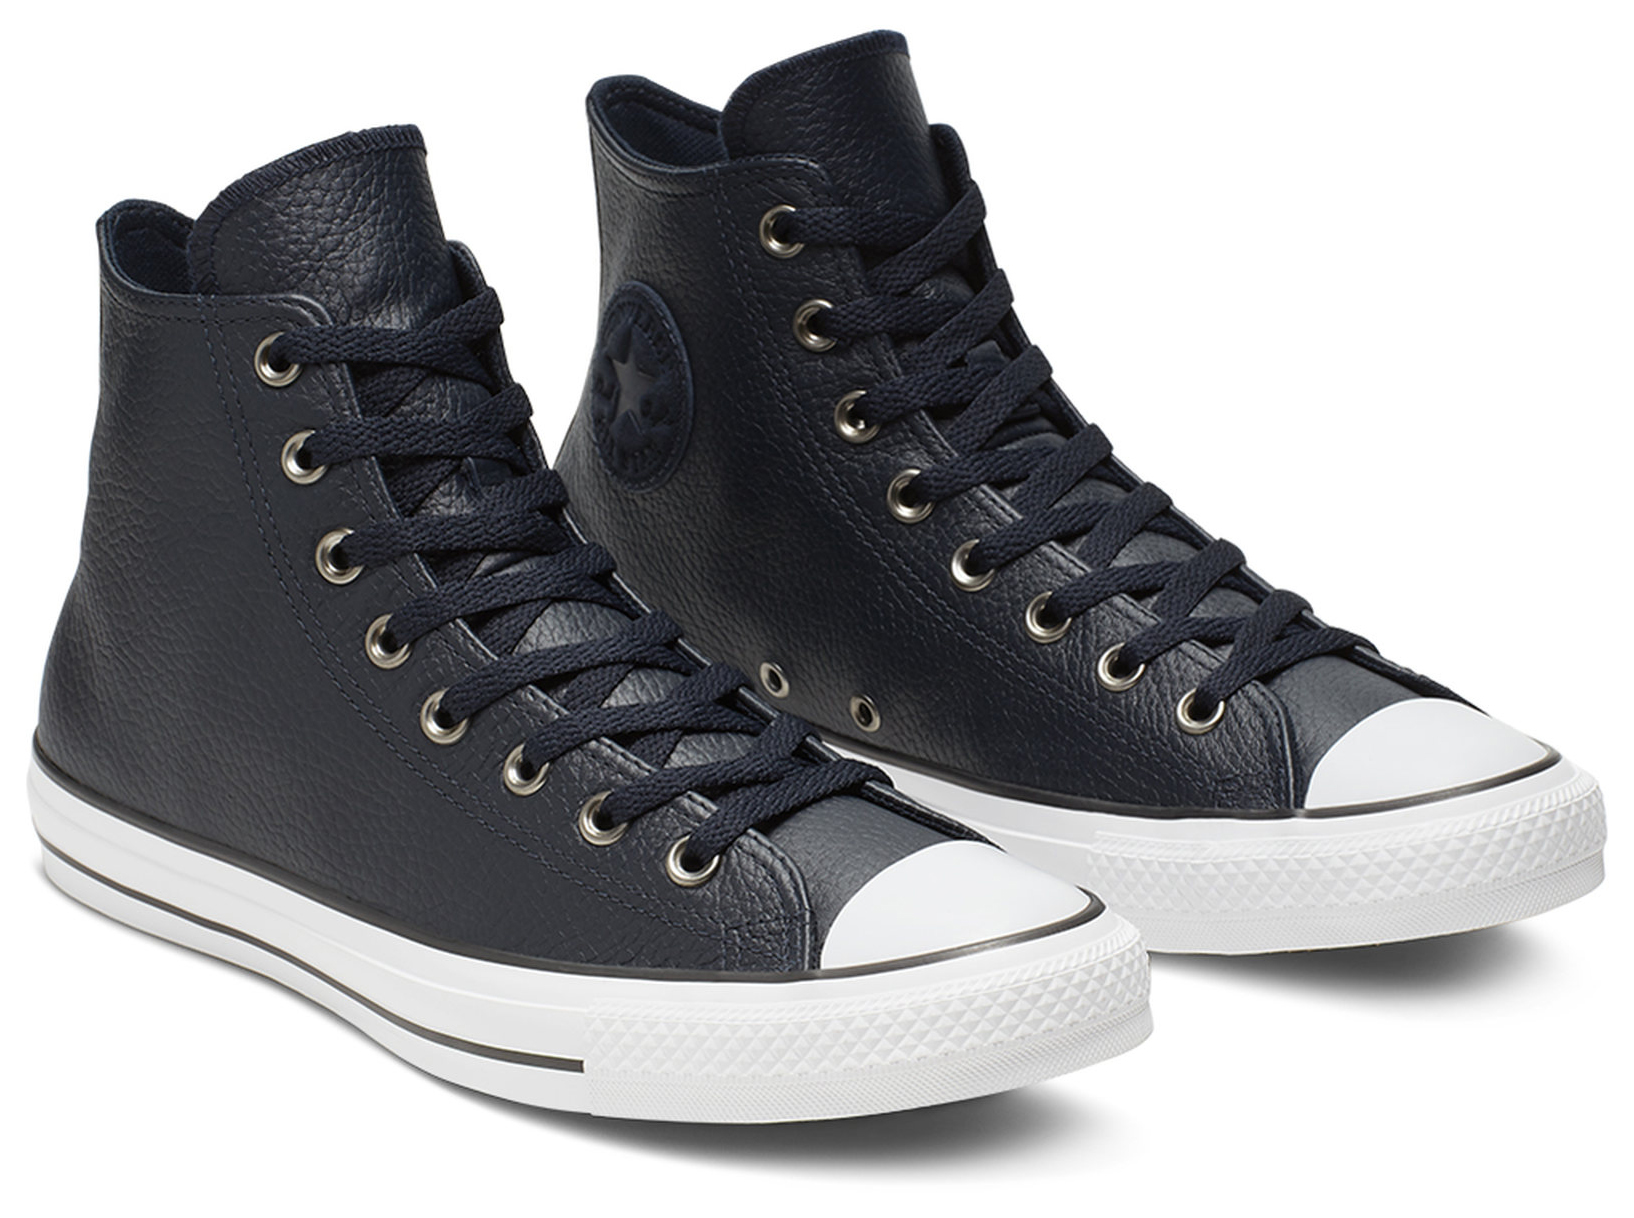 Converse Dark Blue Unisex Leather Sneakers Chuck Taylor All Star